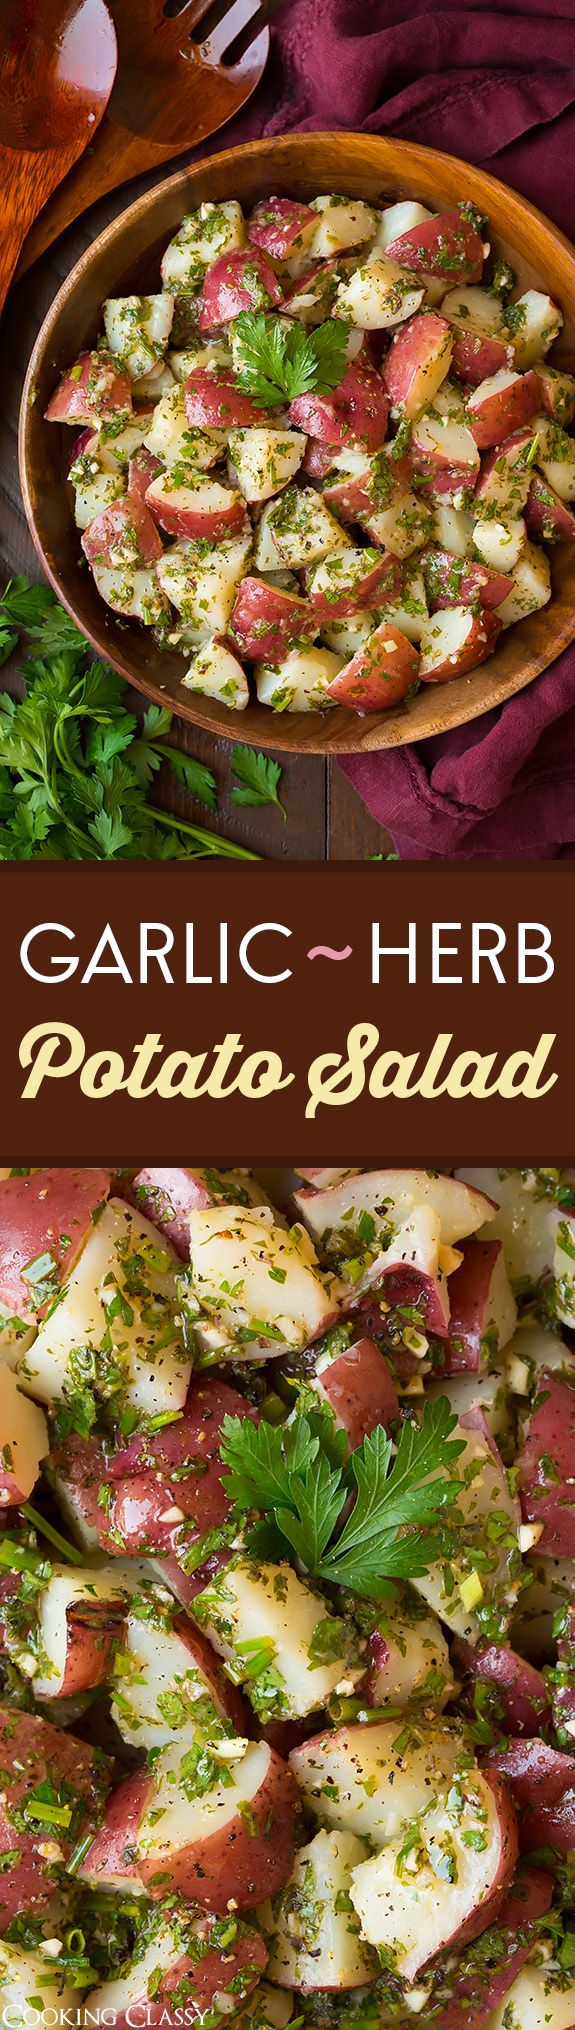 Garlic Herb Potato Salad - this is my FAVORITE potato salad! So flavorful and not so heavy.